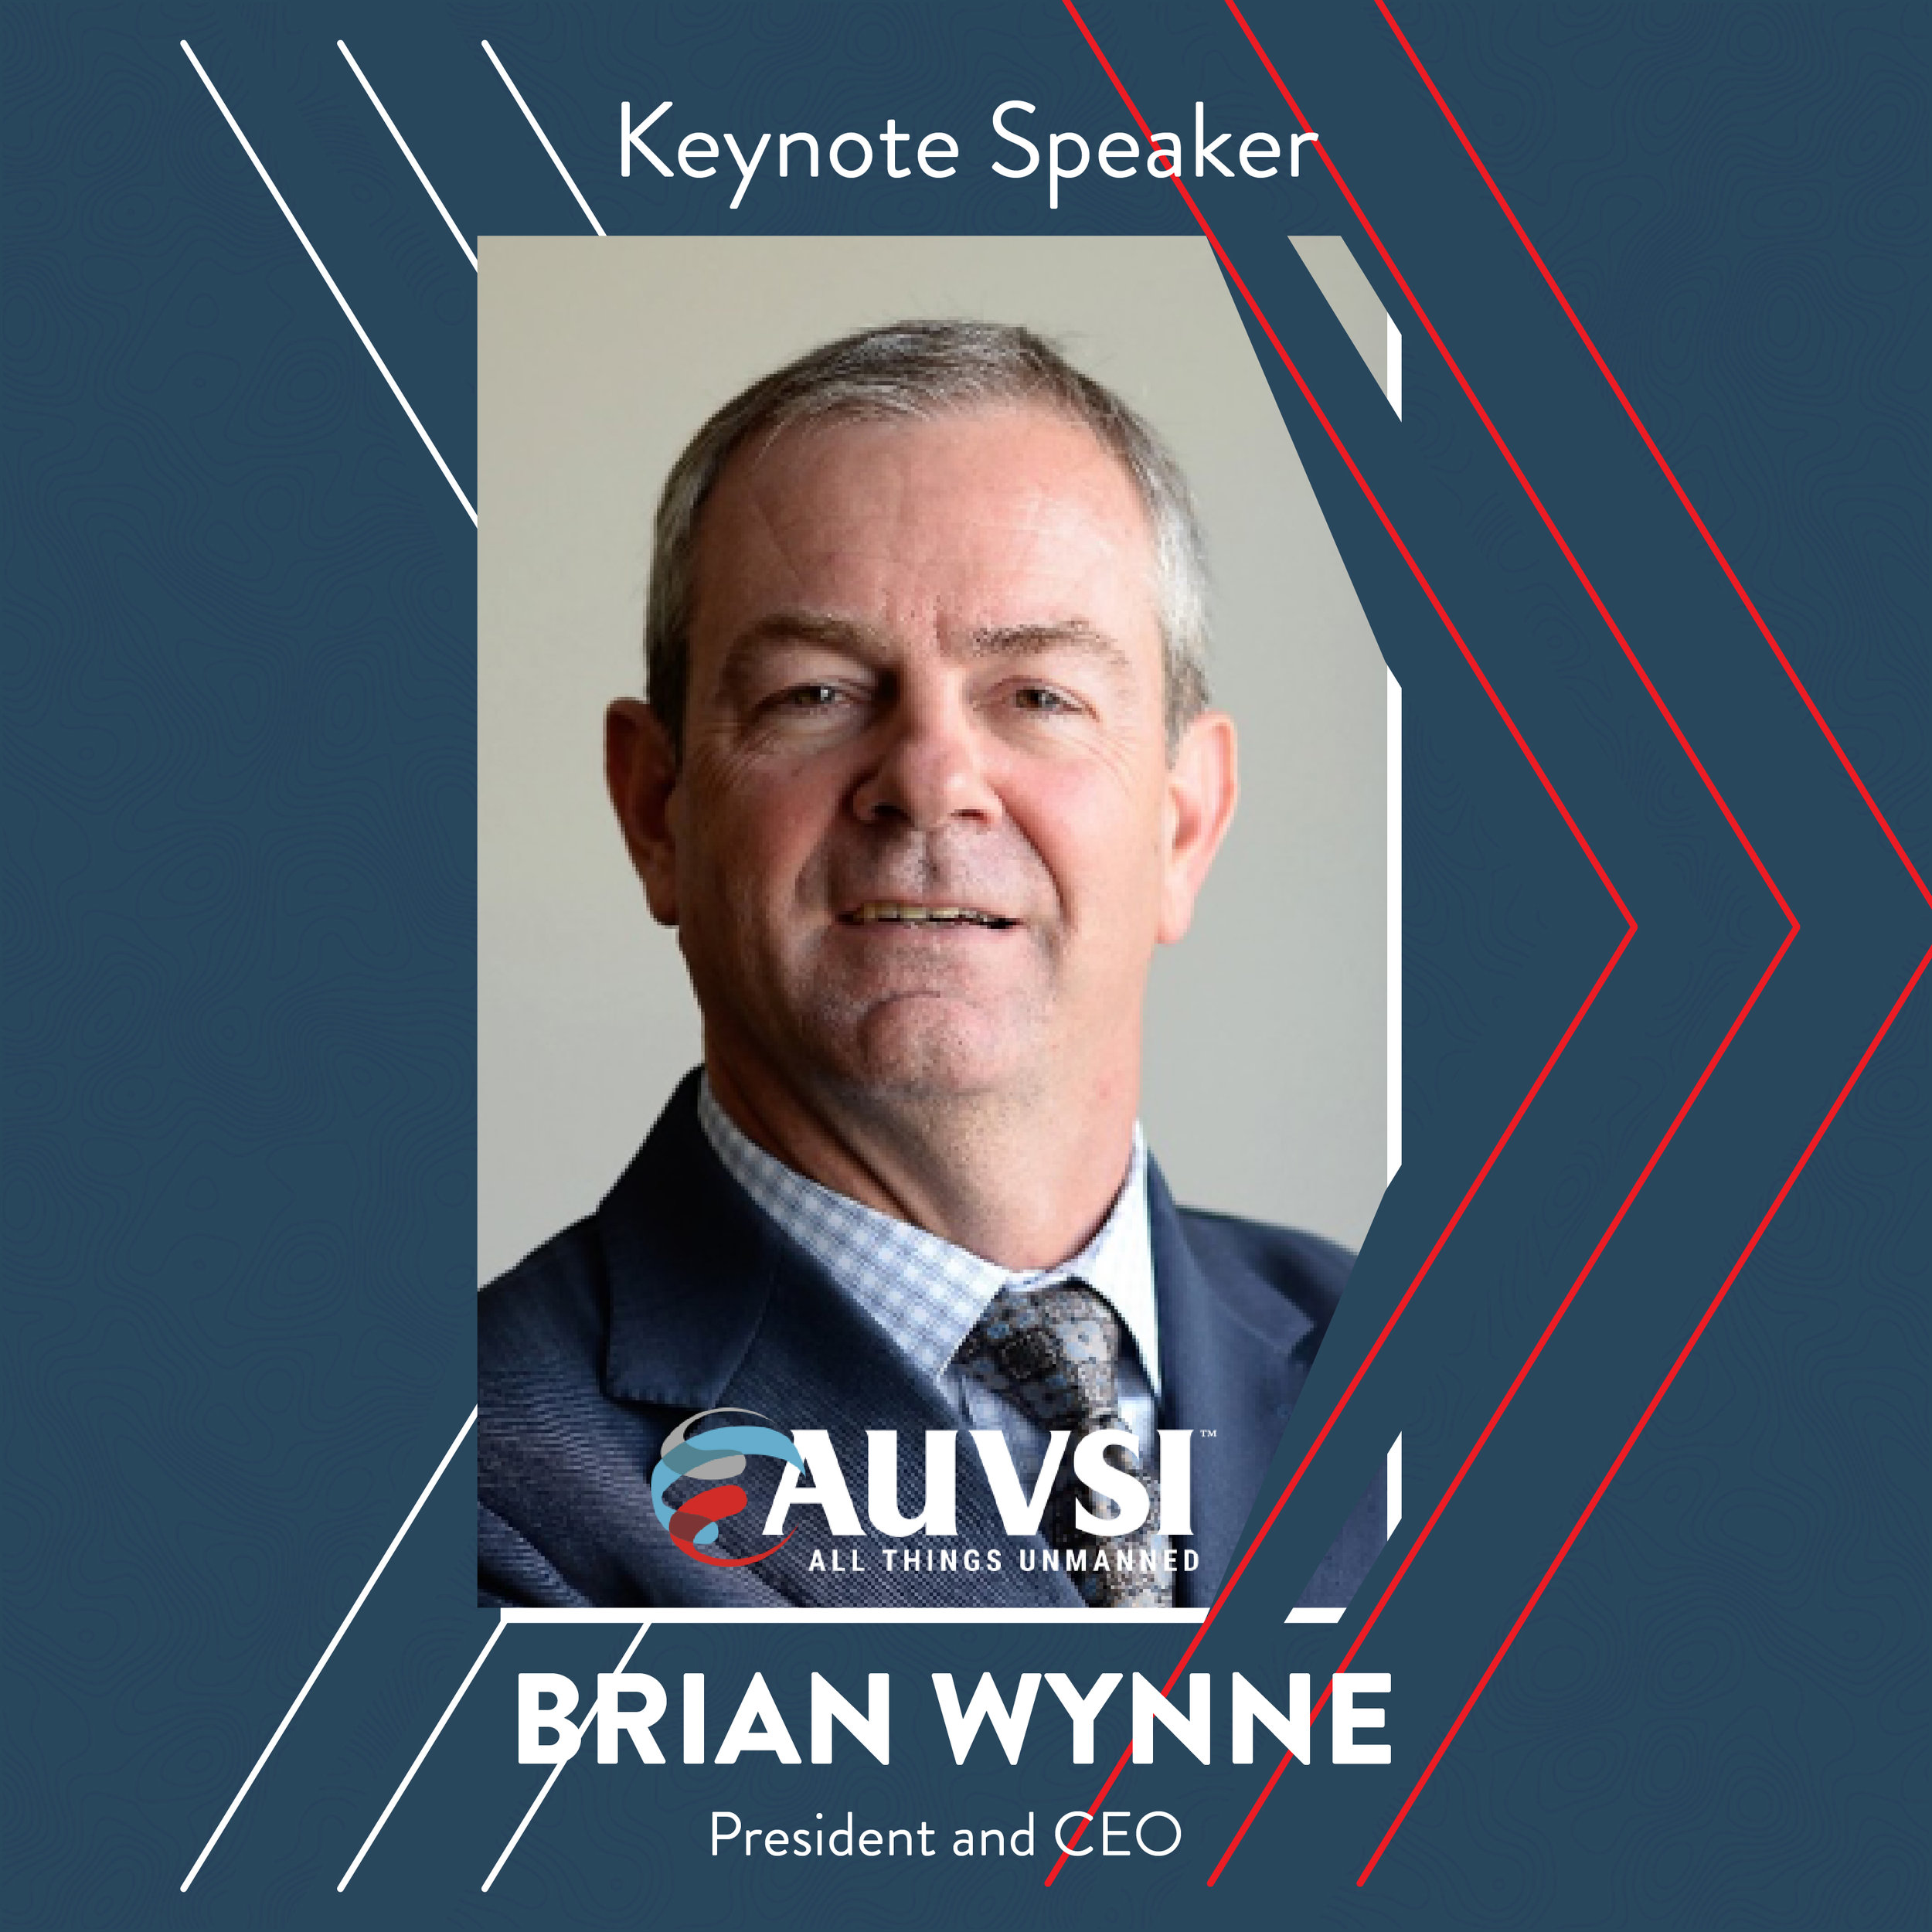 Brian Wynne is president and CEO of the Association for Unmanned Vehicle Systems International (AUVSI), the world's largest nonprofit organization dedicated to the advancement of unmanned systems and robotics. AUVSI represents corporations and professionals from more than 60 countries involved in business and government and who work in the defense, civil, and commercial markets.